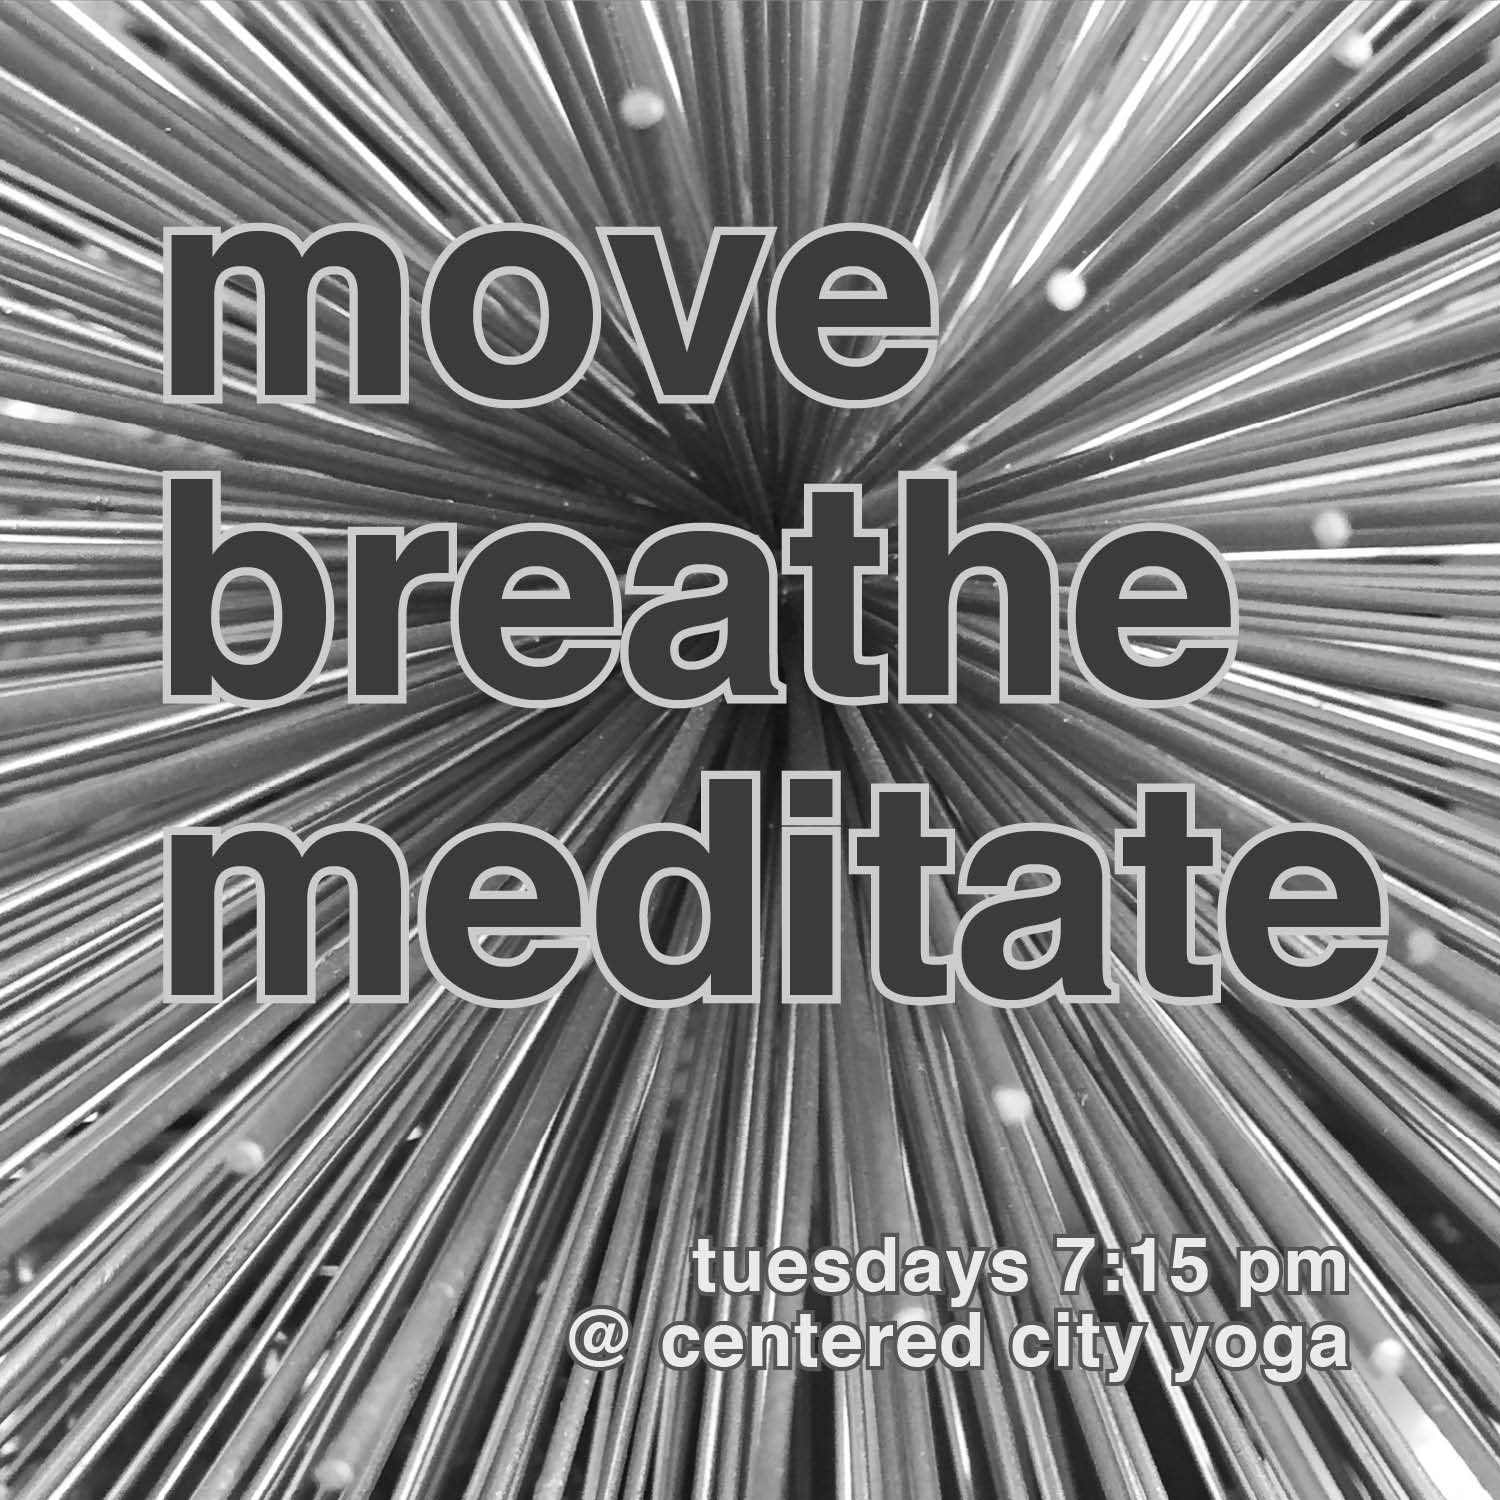 MoveBreatheMeditate_22.jpg